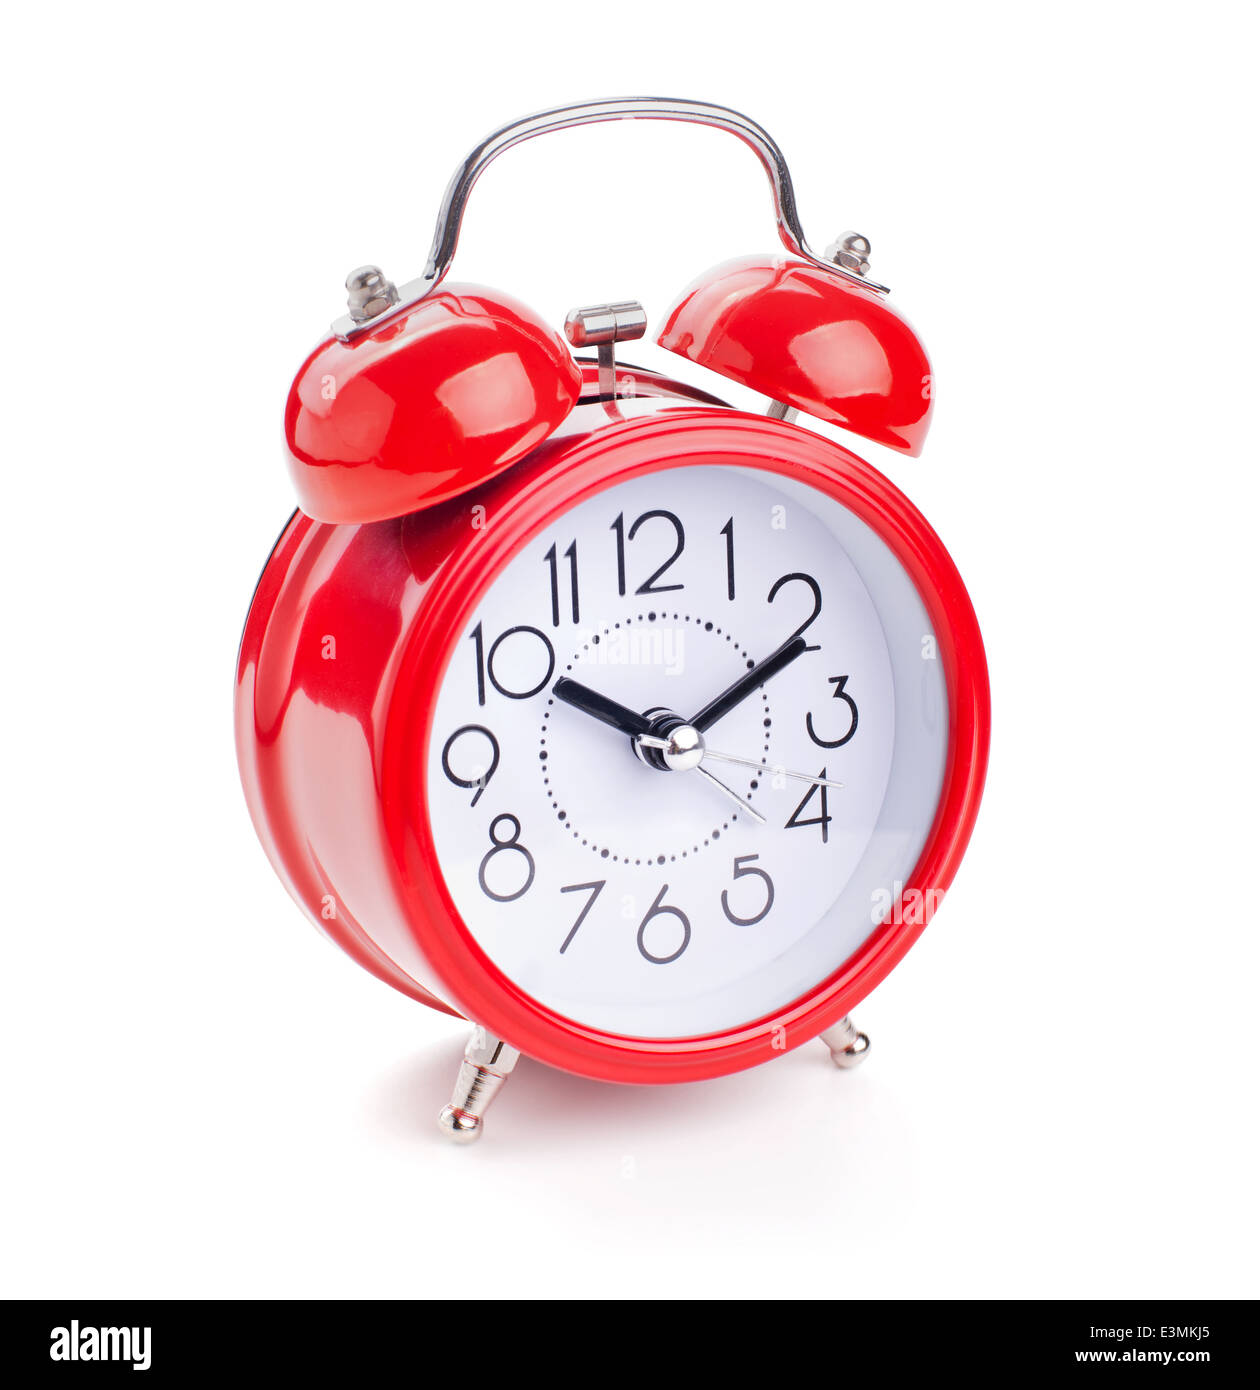 red alarm clock isolated on white background - Stock Image